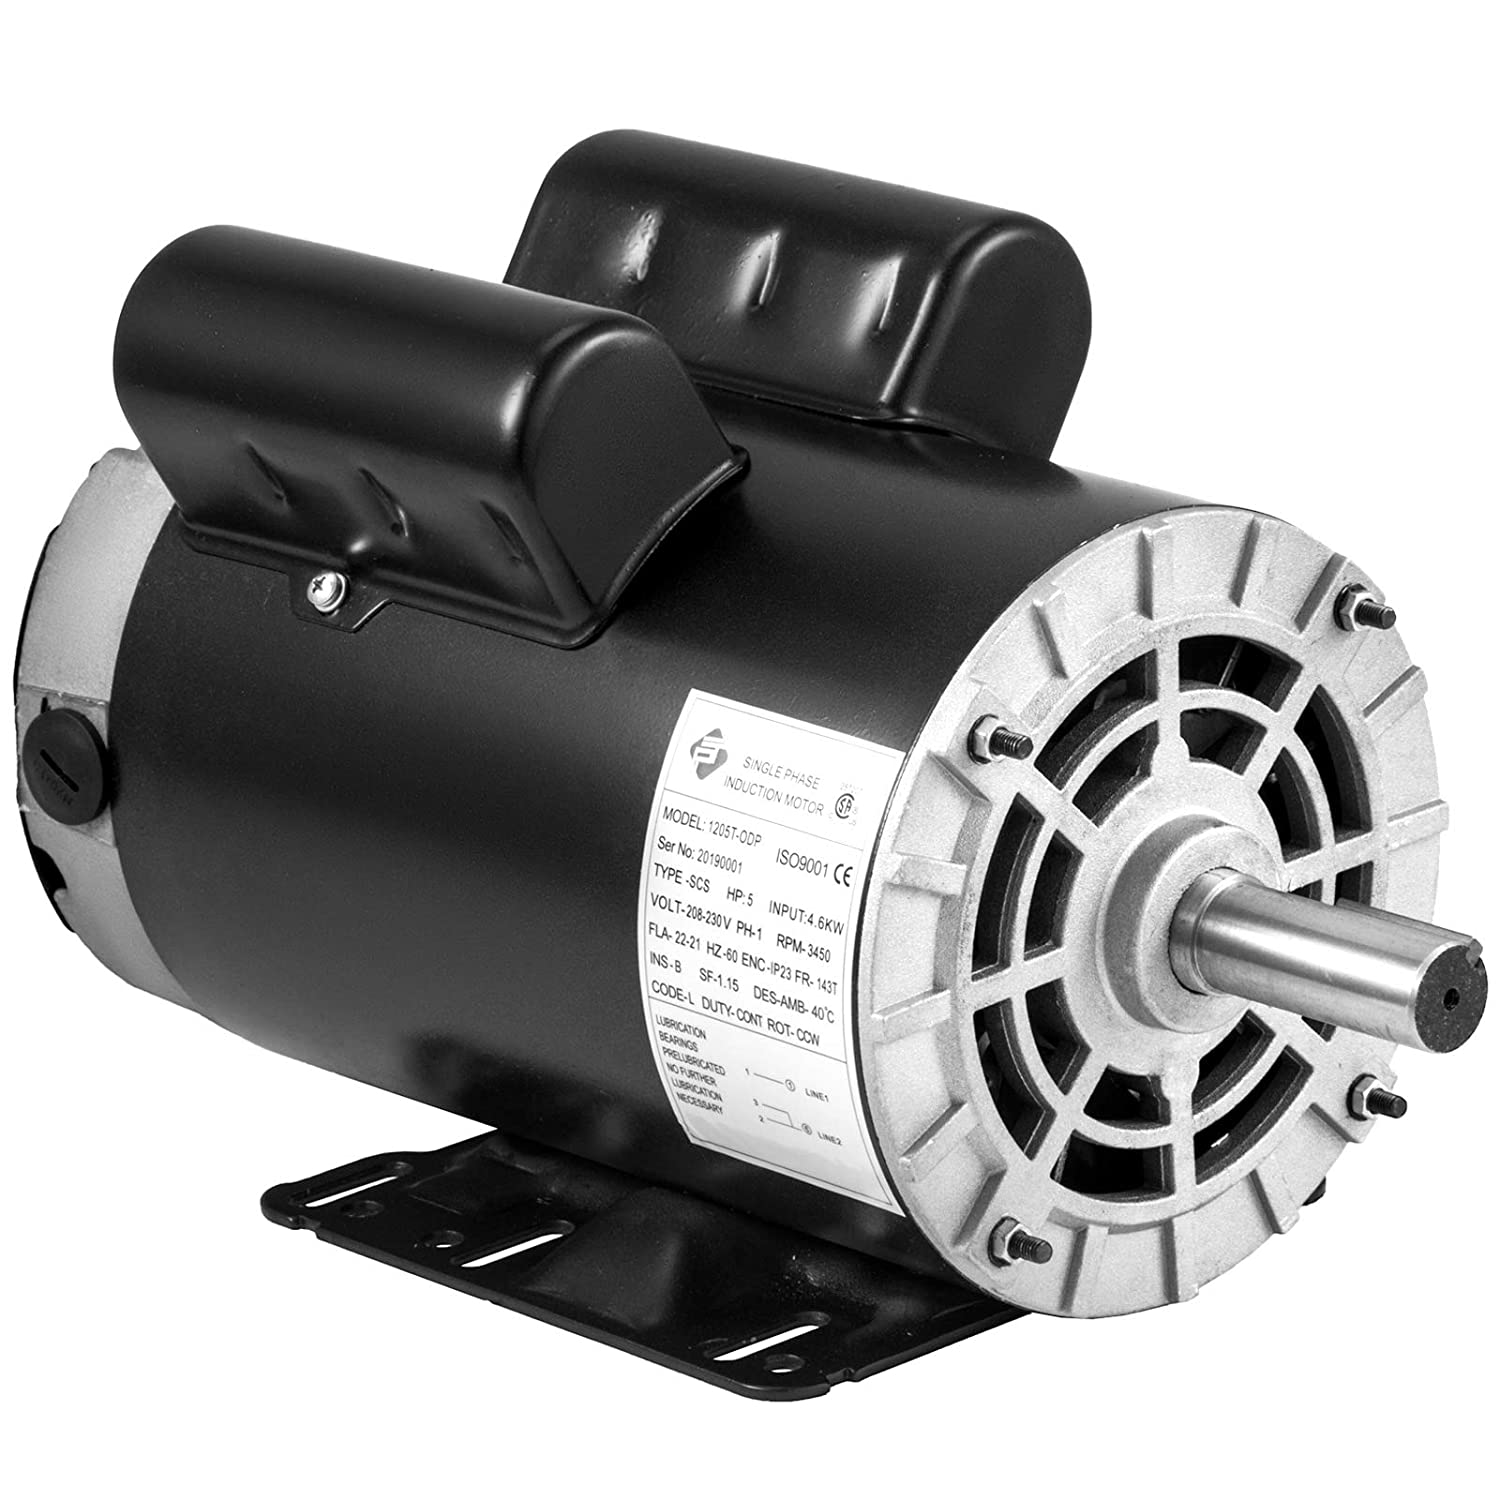 Mophorn Electric Motor 5Hp Single Phase Motor 3450 RPM 60Hz AC motor 143T Frame Air Compressor Motor 230V Suit for Agricultural Machinery and General Equipment